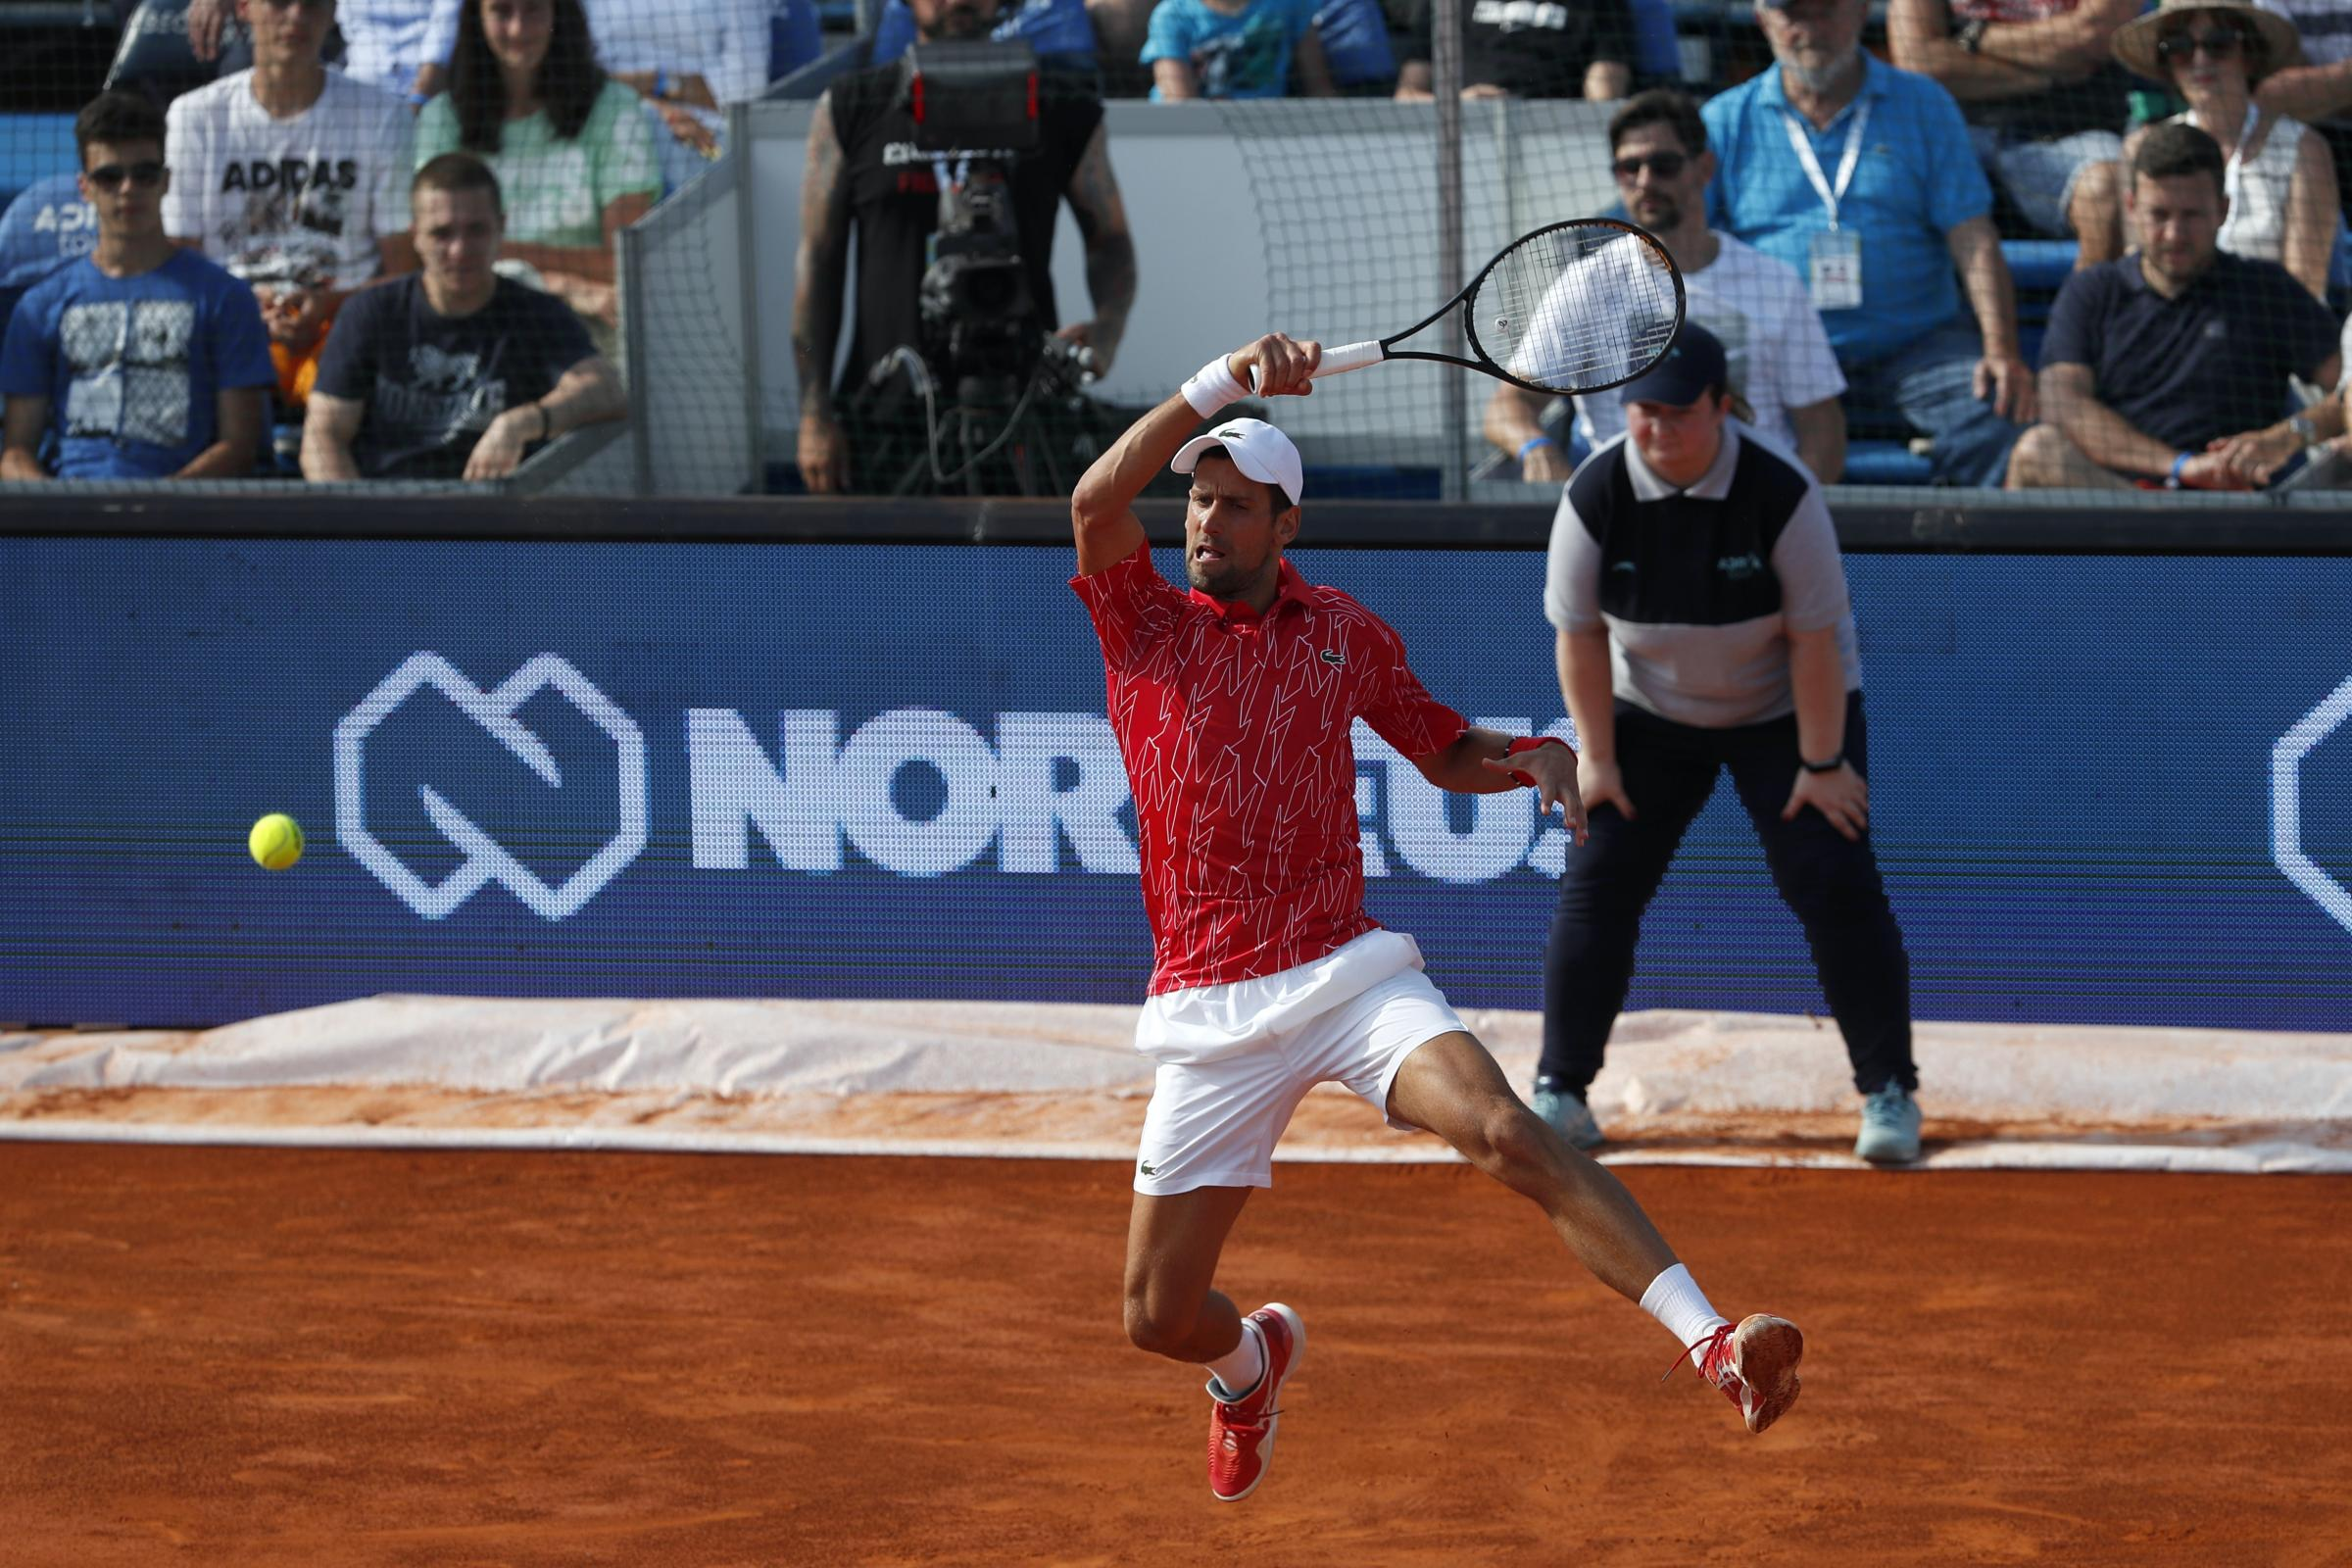 Novak Djokovic Makes Winning Return At Adria Tour In Belgrade Gazette Herald